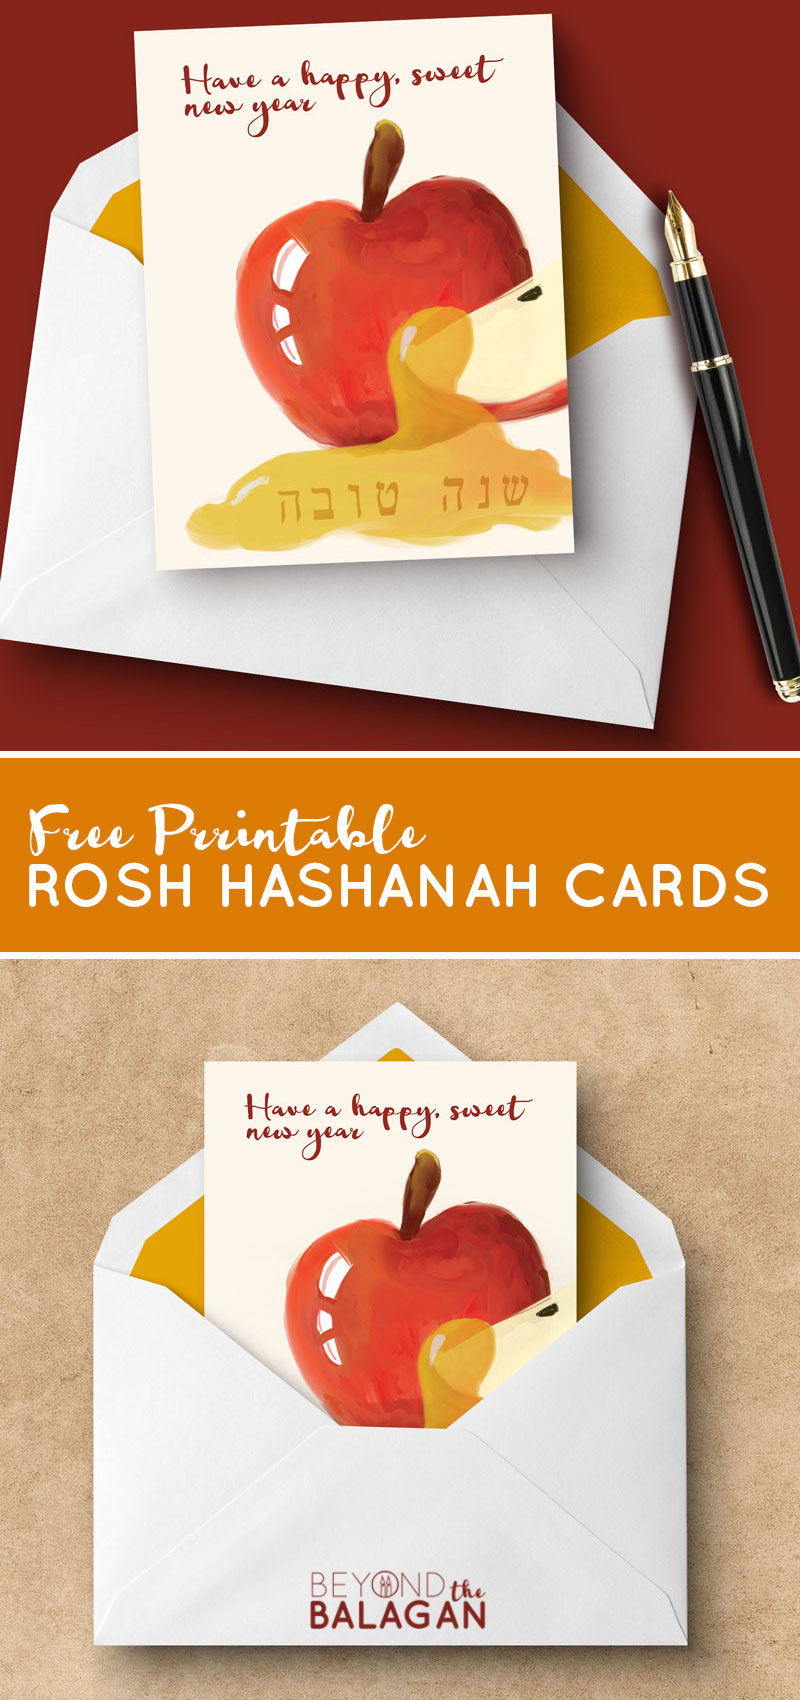 Rosh Hashanah Cards Free Printable Greeting Cards for